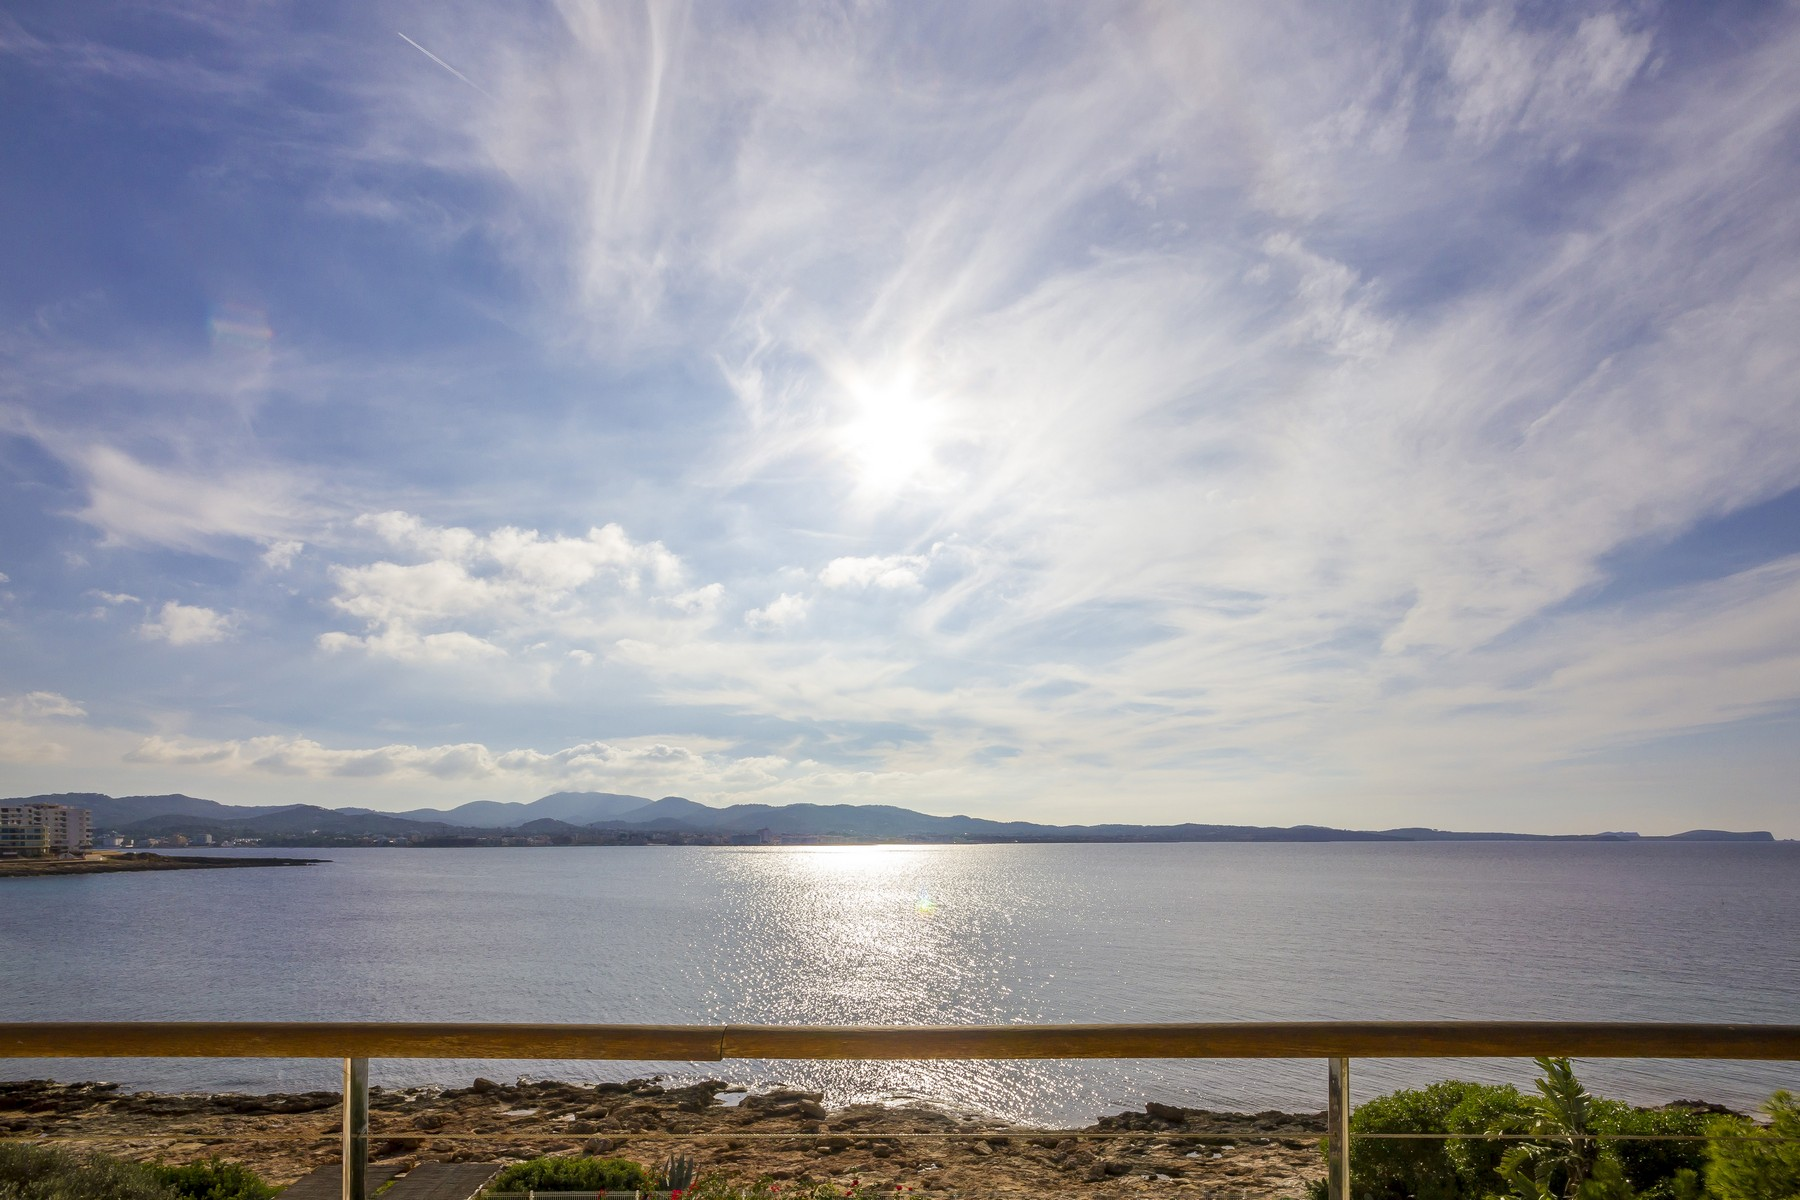 Apartamento por un Venta en Frontline Attic with Sunset Sea Views San Antonio Abad, Mallorca, 07830 España